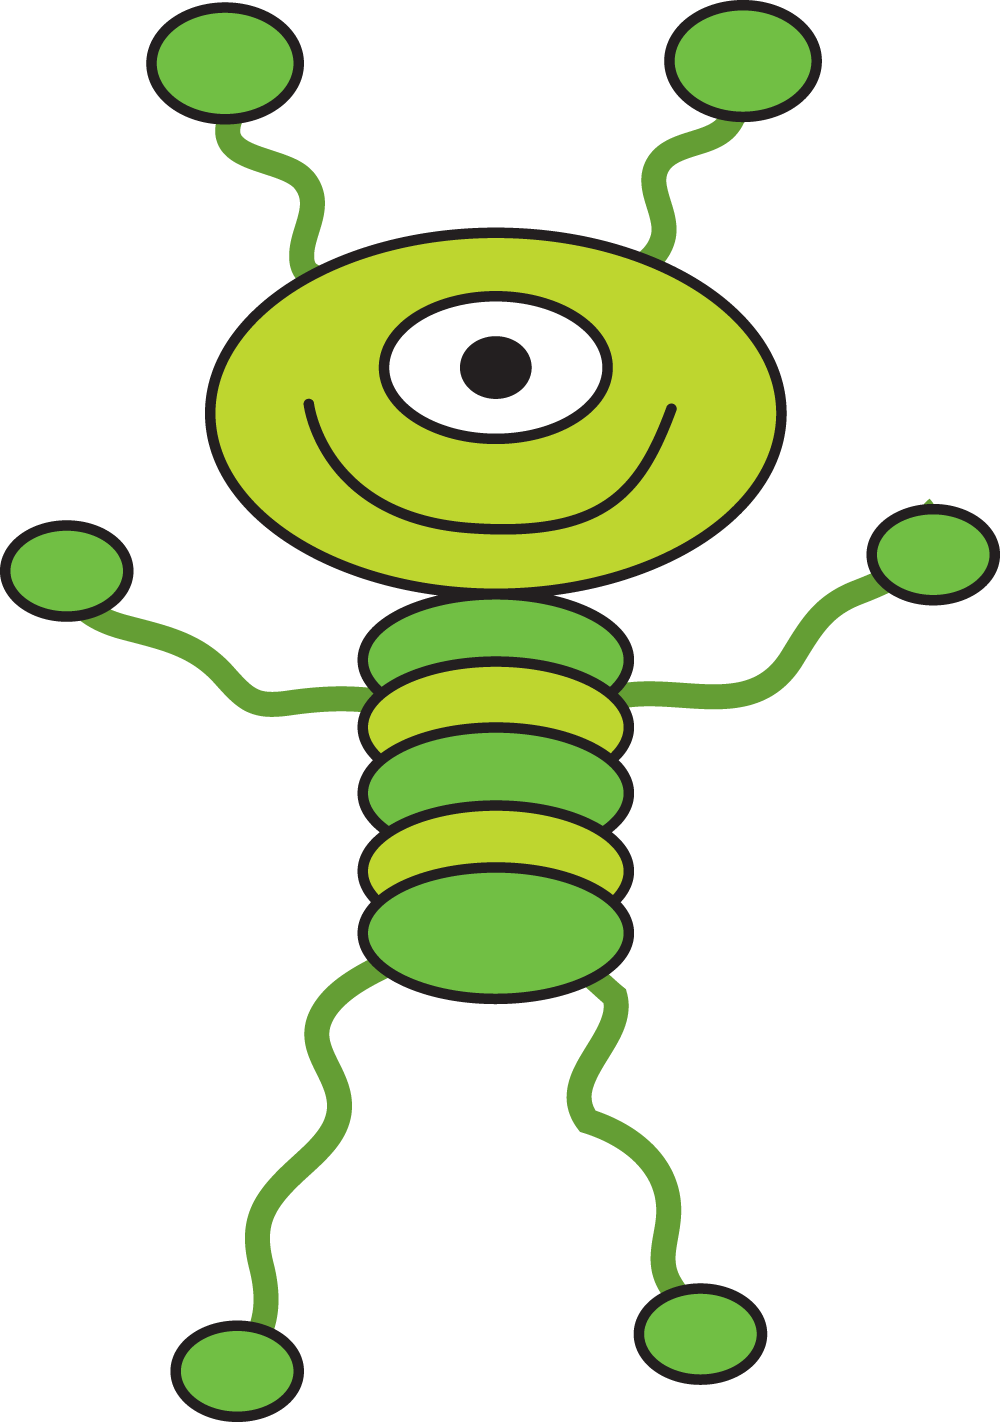 Alien clipart #10, Download drawings